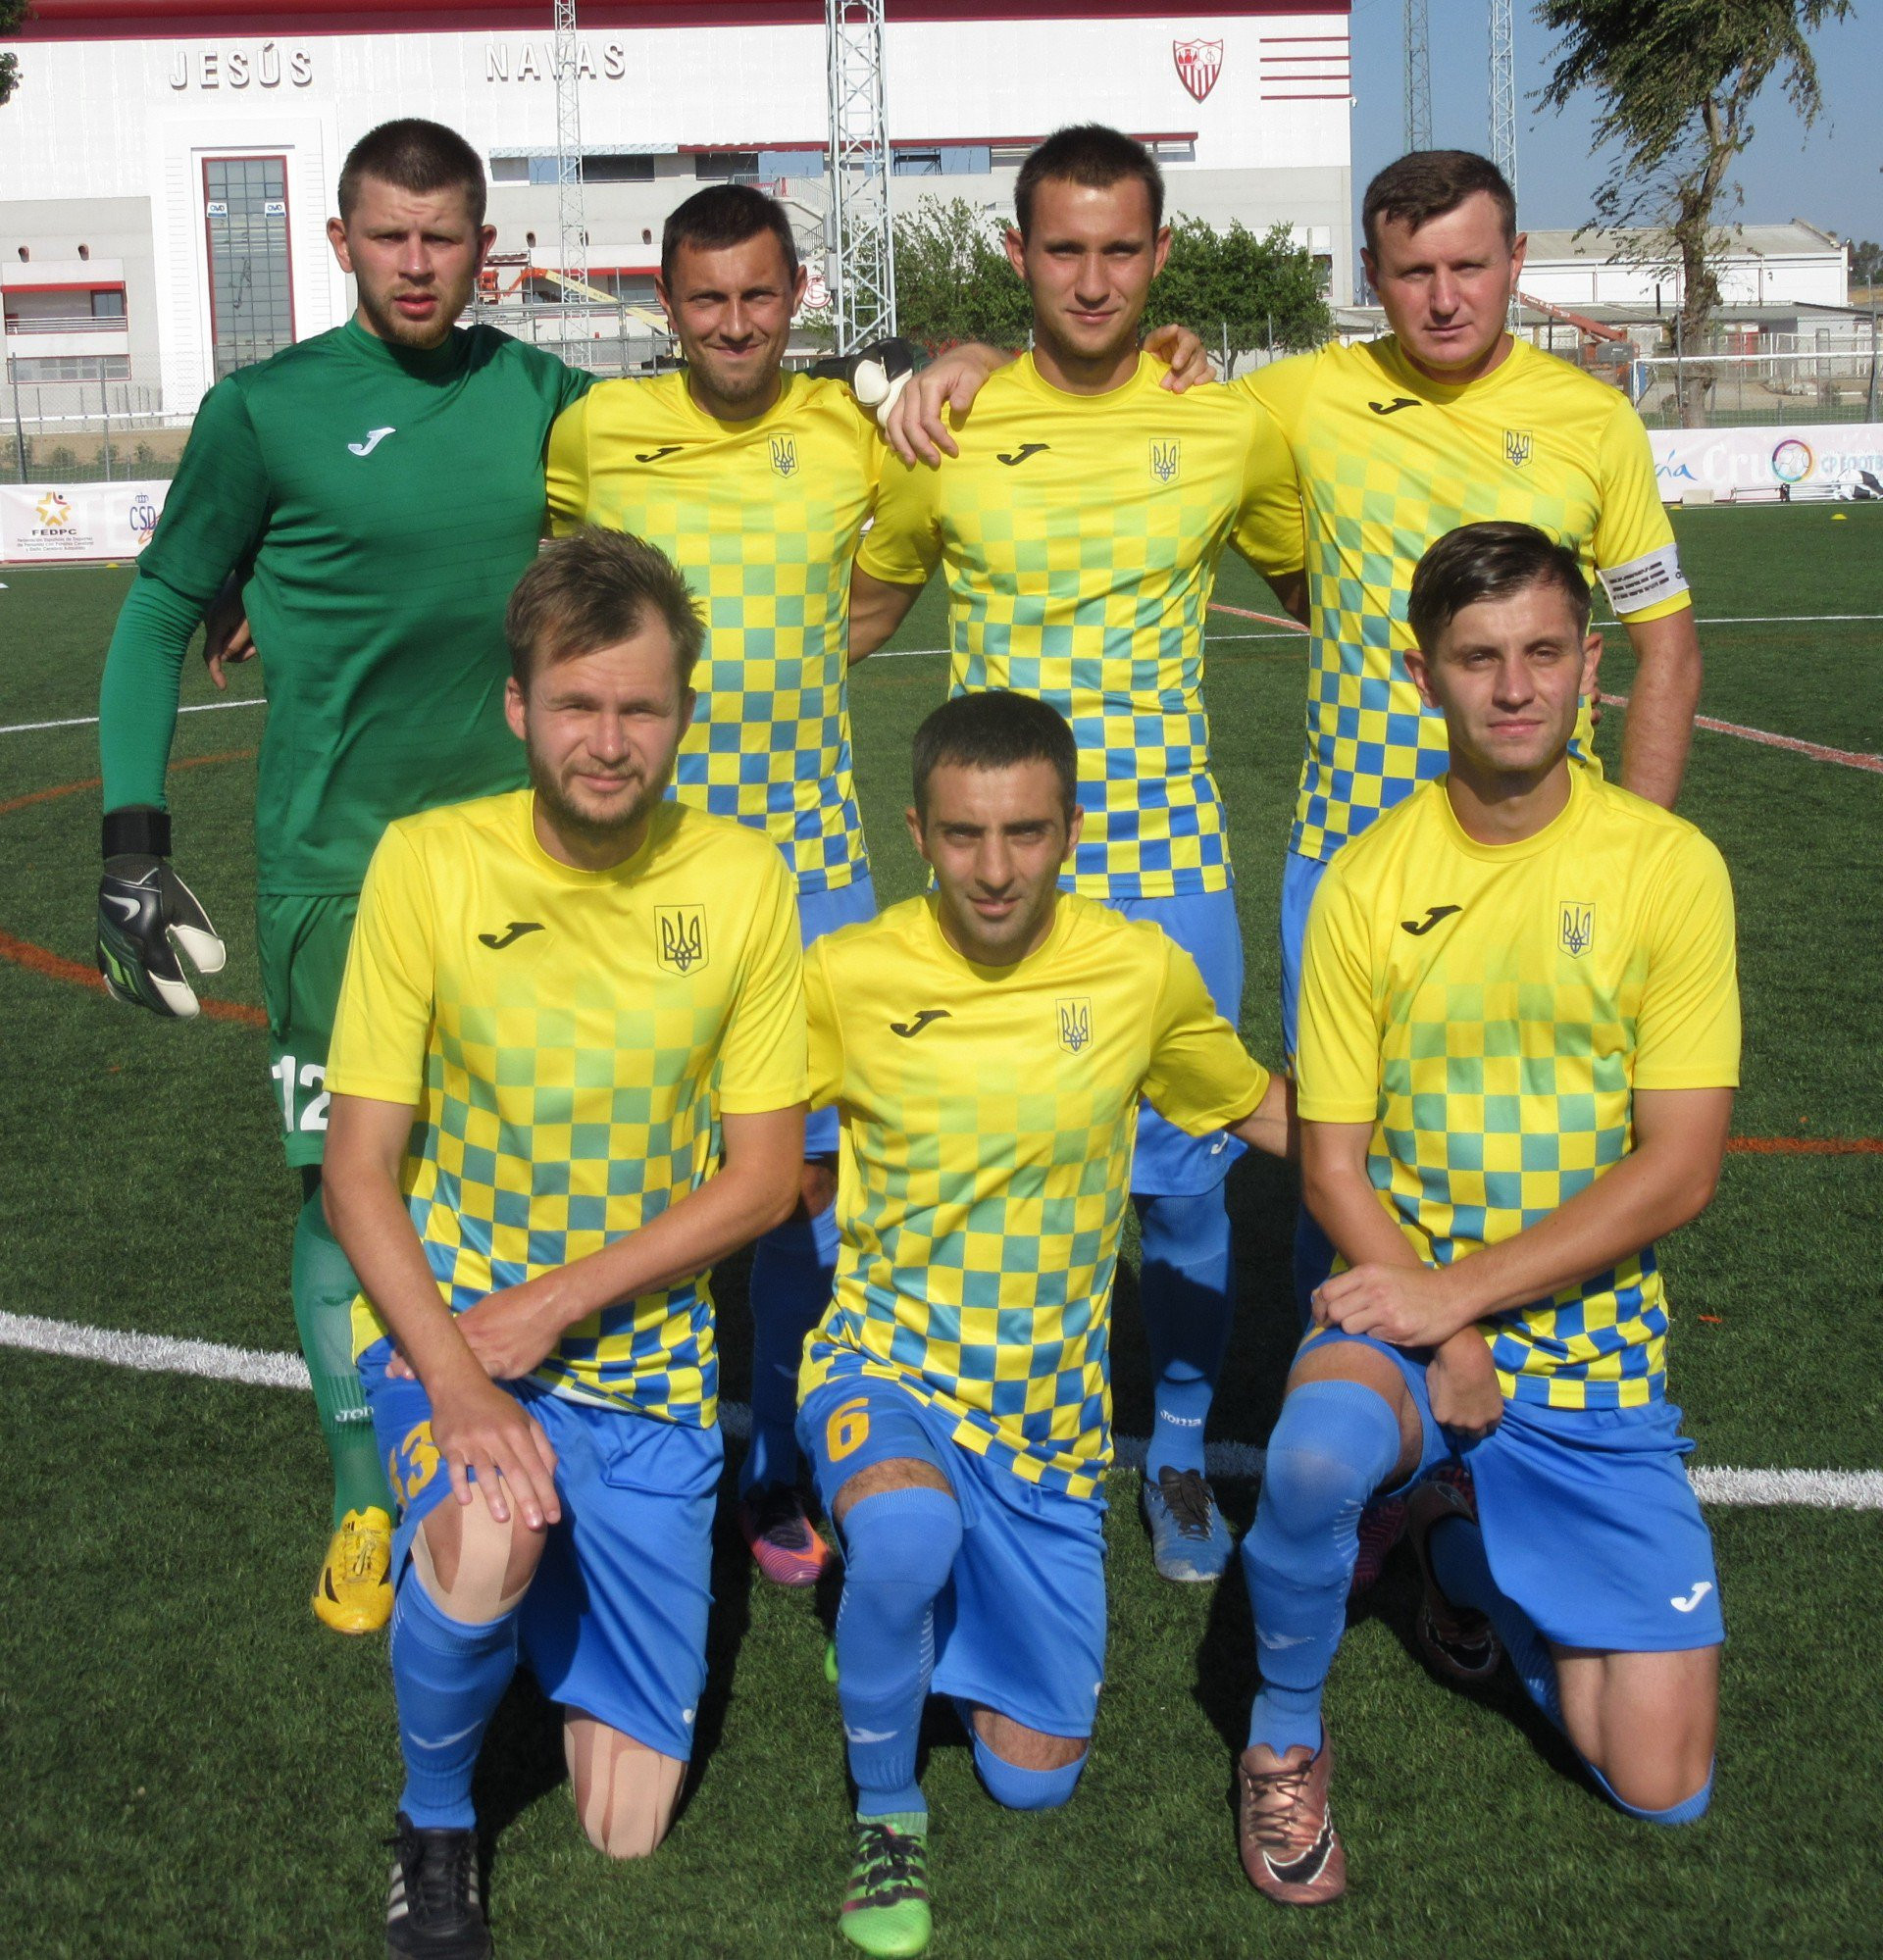 Defending champions Ukraine to meet Russia in IFCPF World Cup final